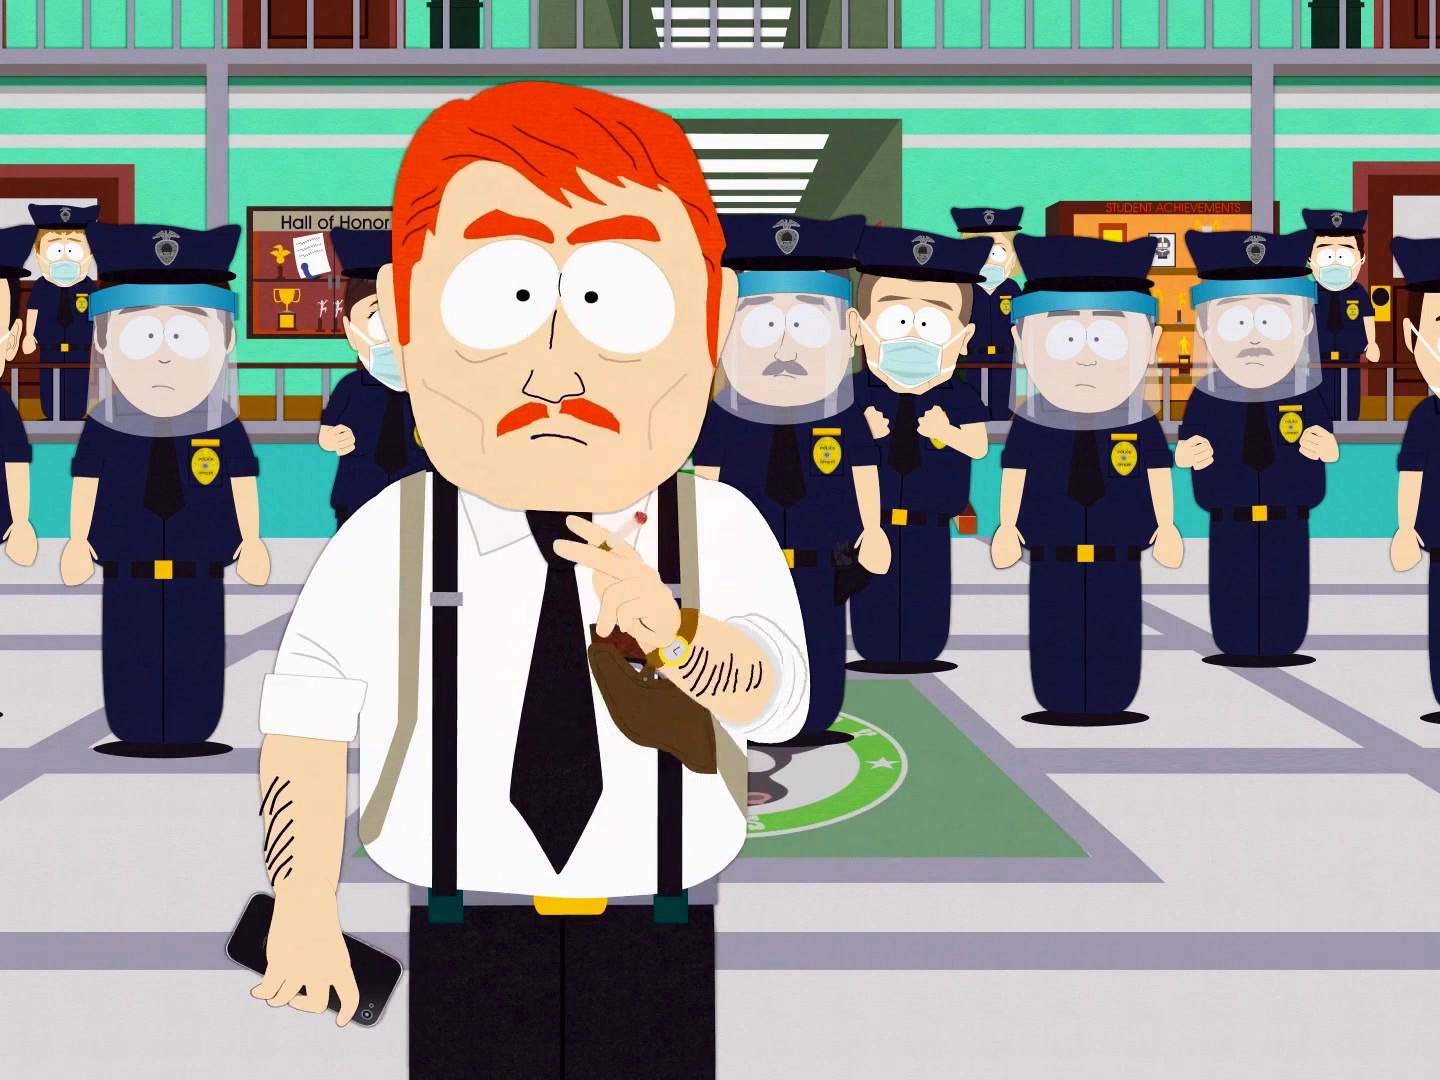 South Park: South Park Police Equipped To Manage Town in Chaos